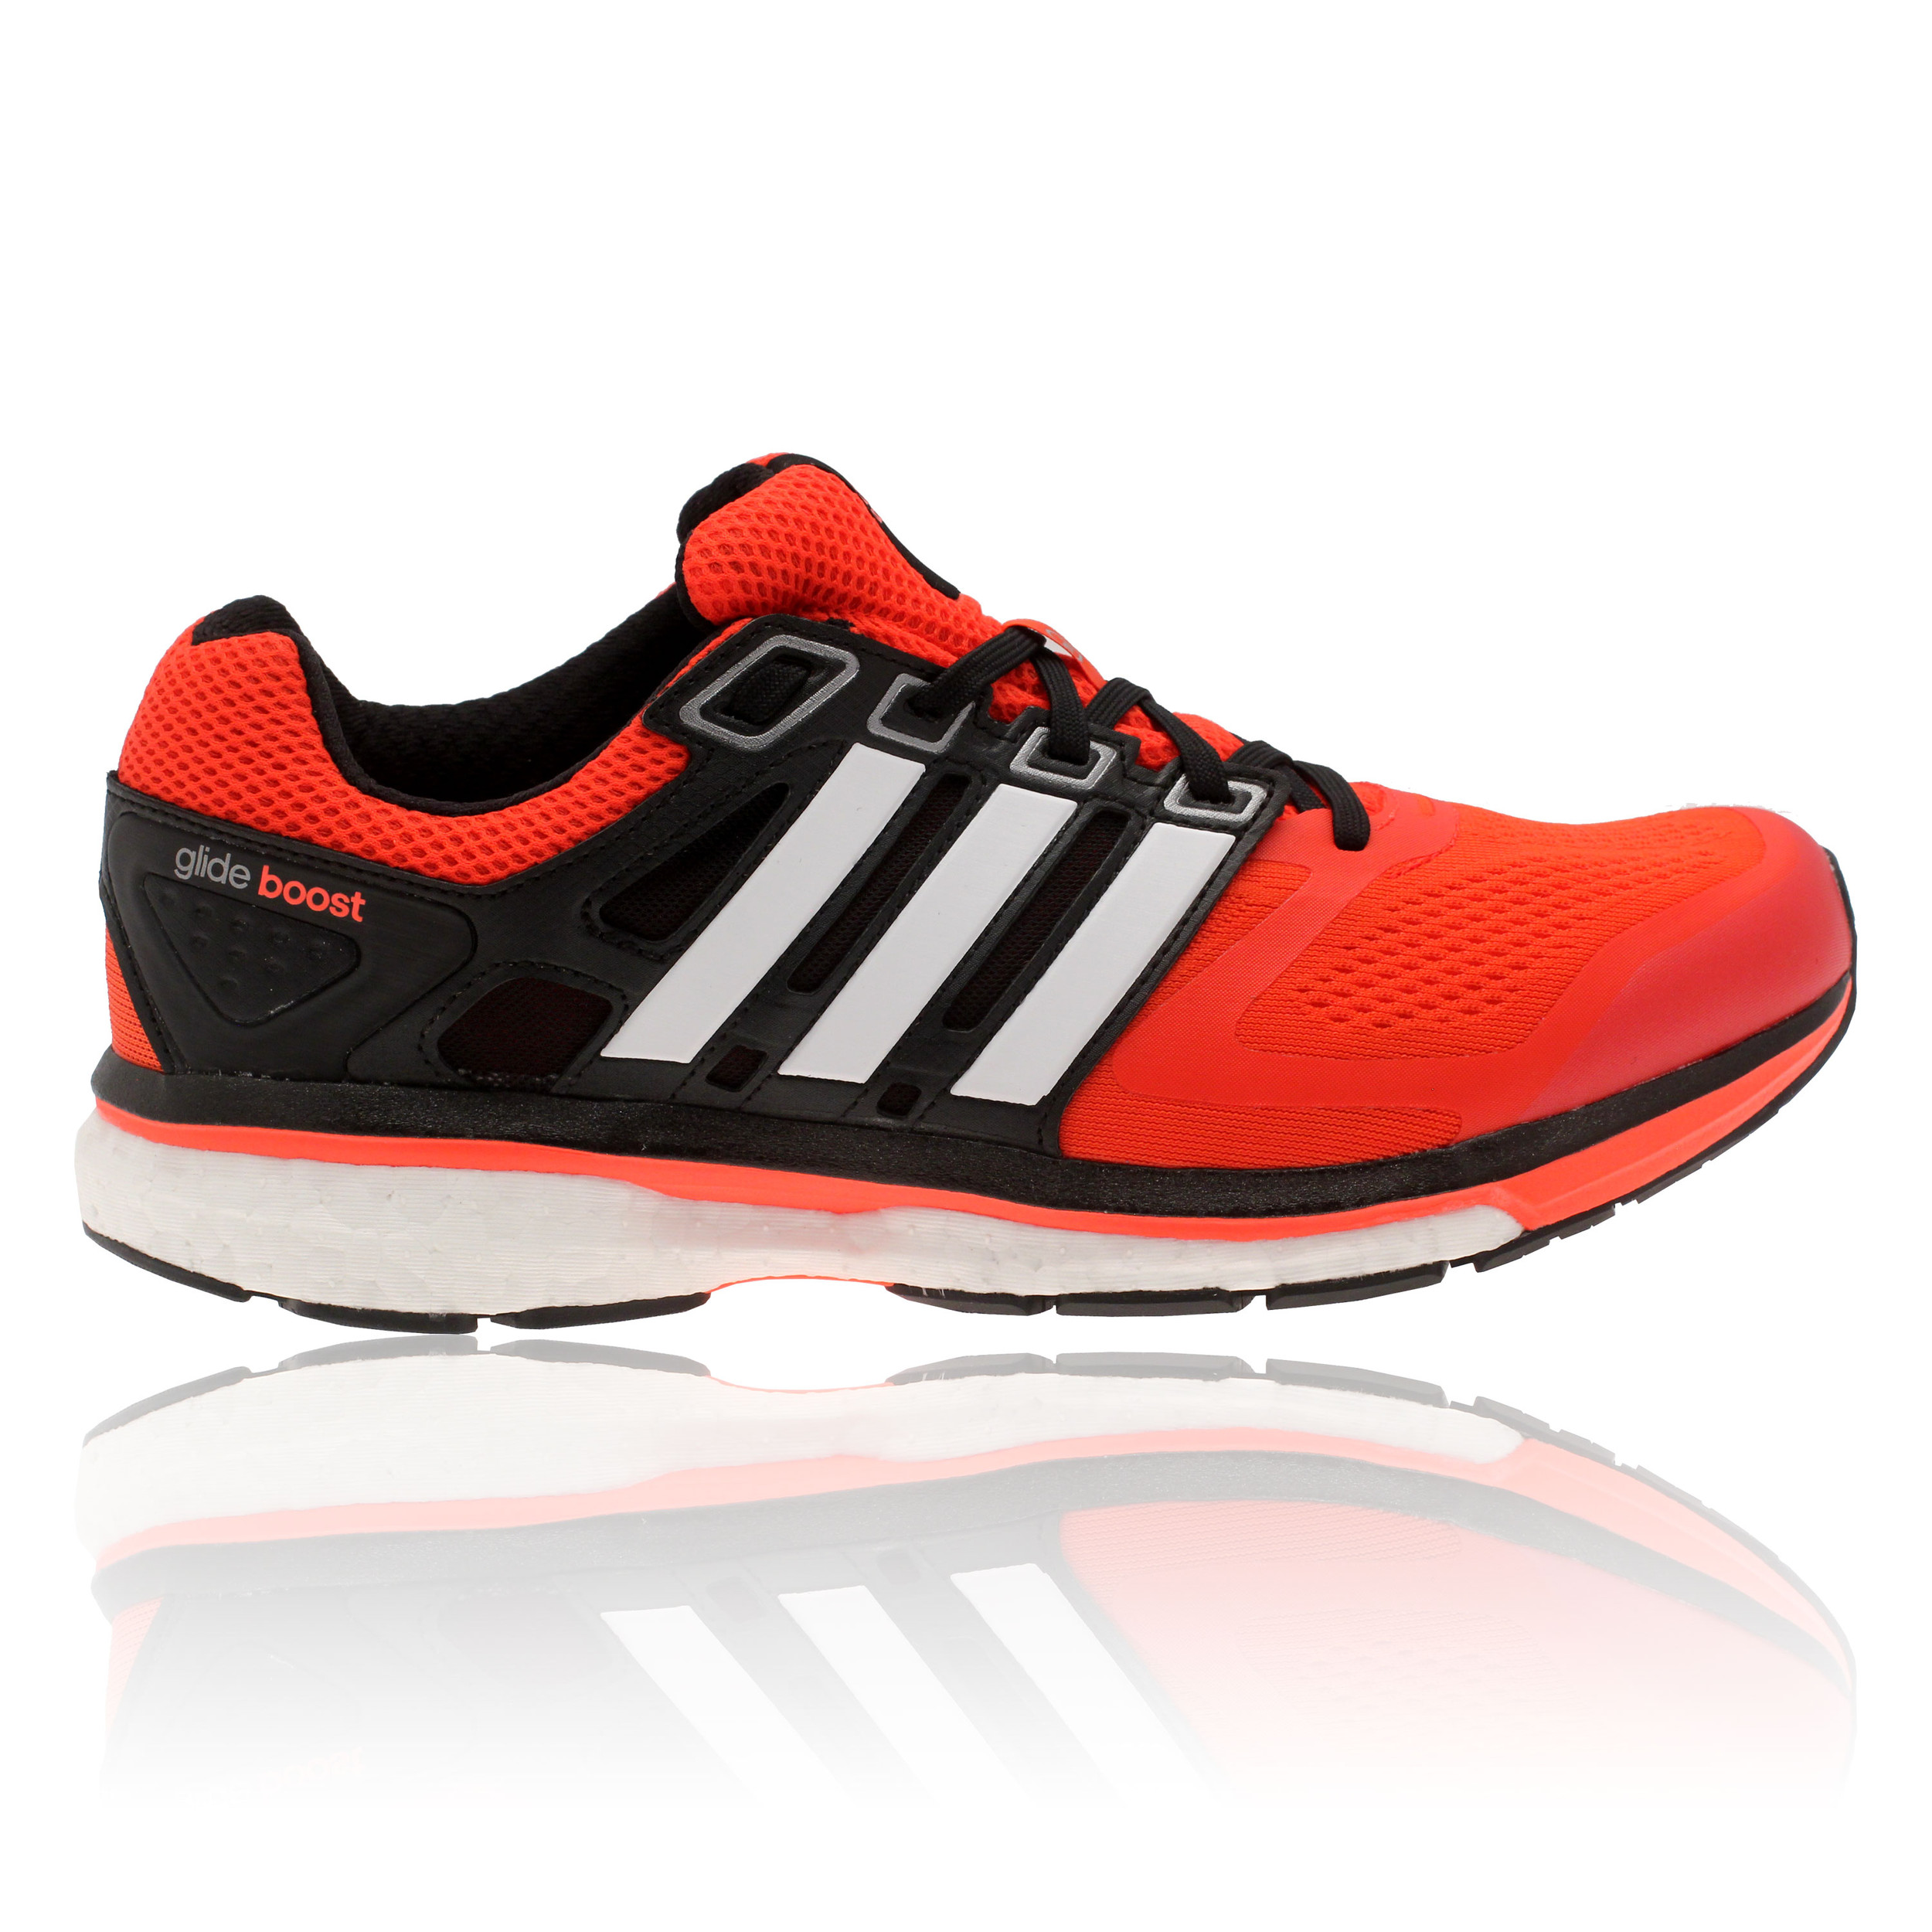 Adidas Supernova Glide 6 Boost Running Shoes - 50% Off ...